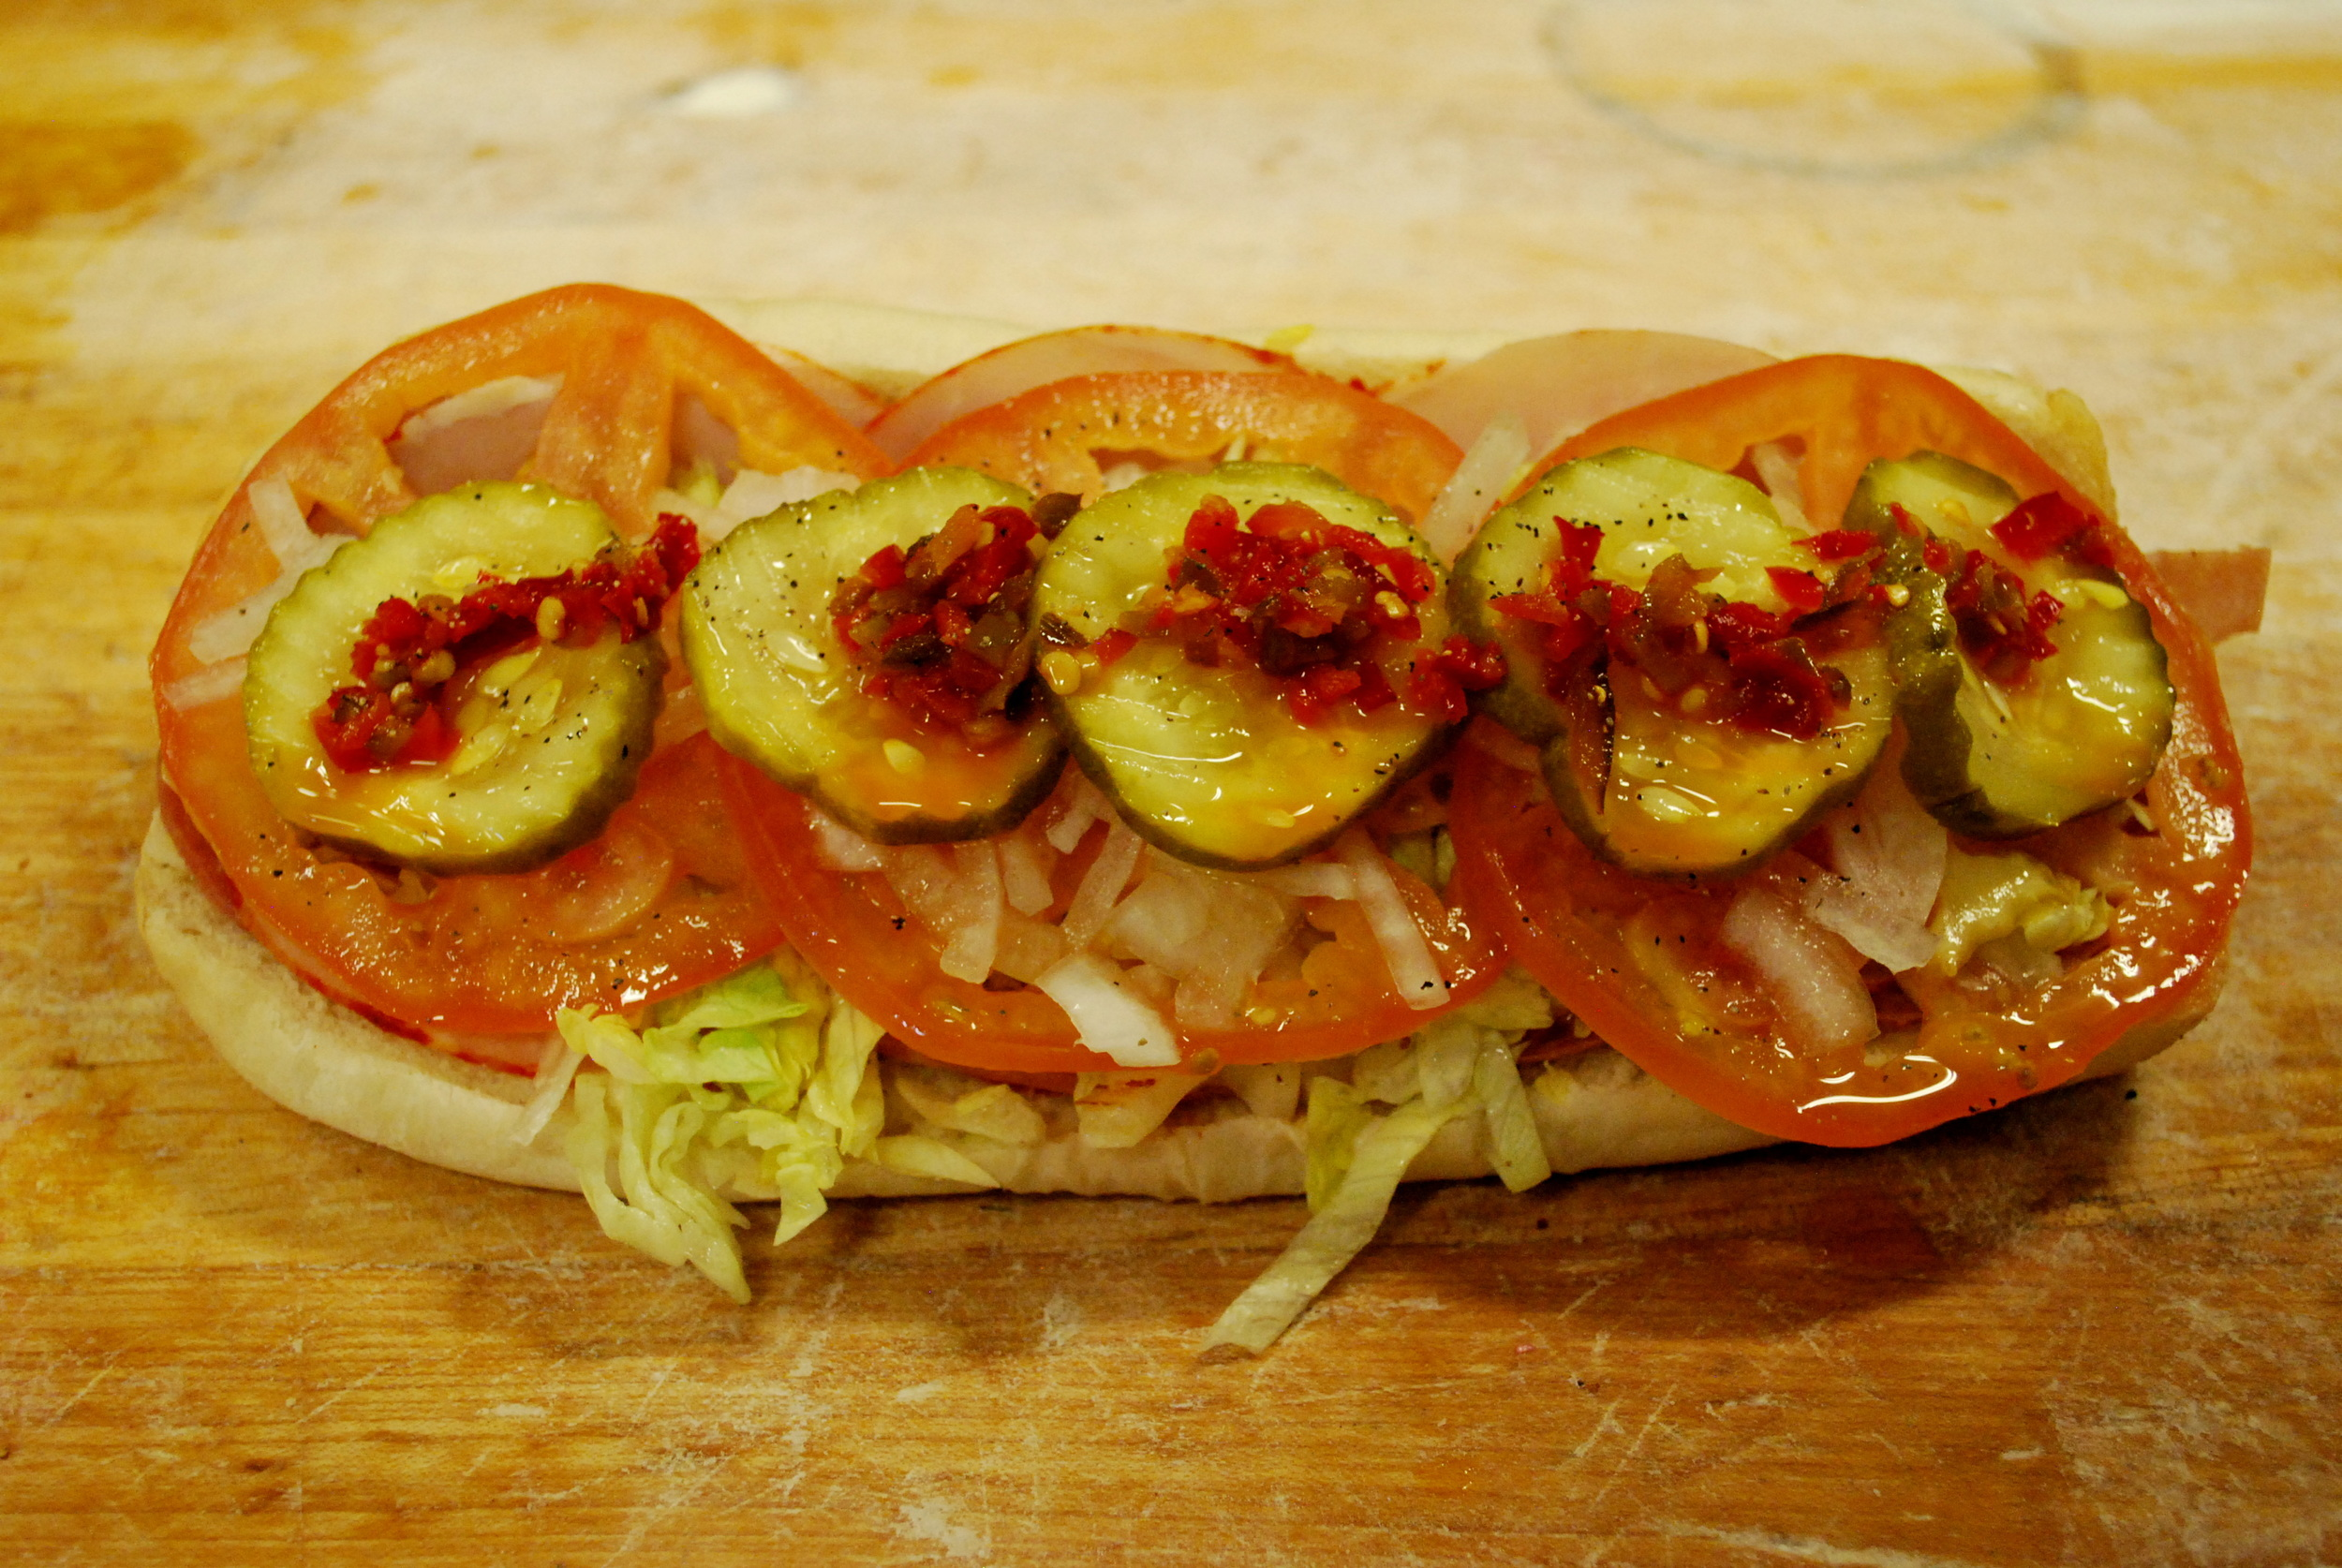 One of our signature sandwiches: The Italian Sandwich